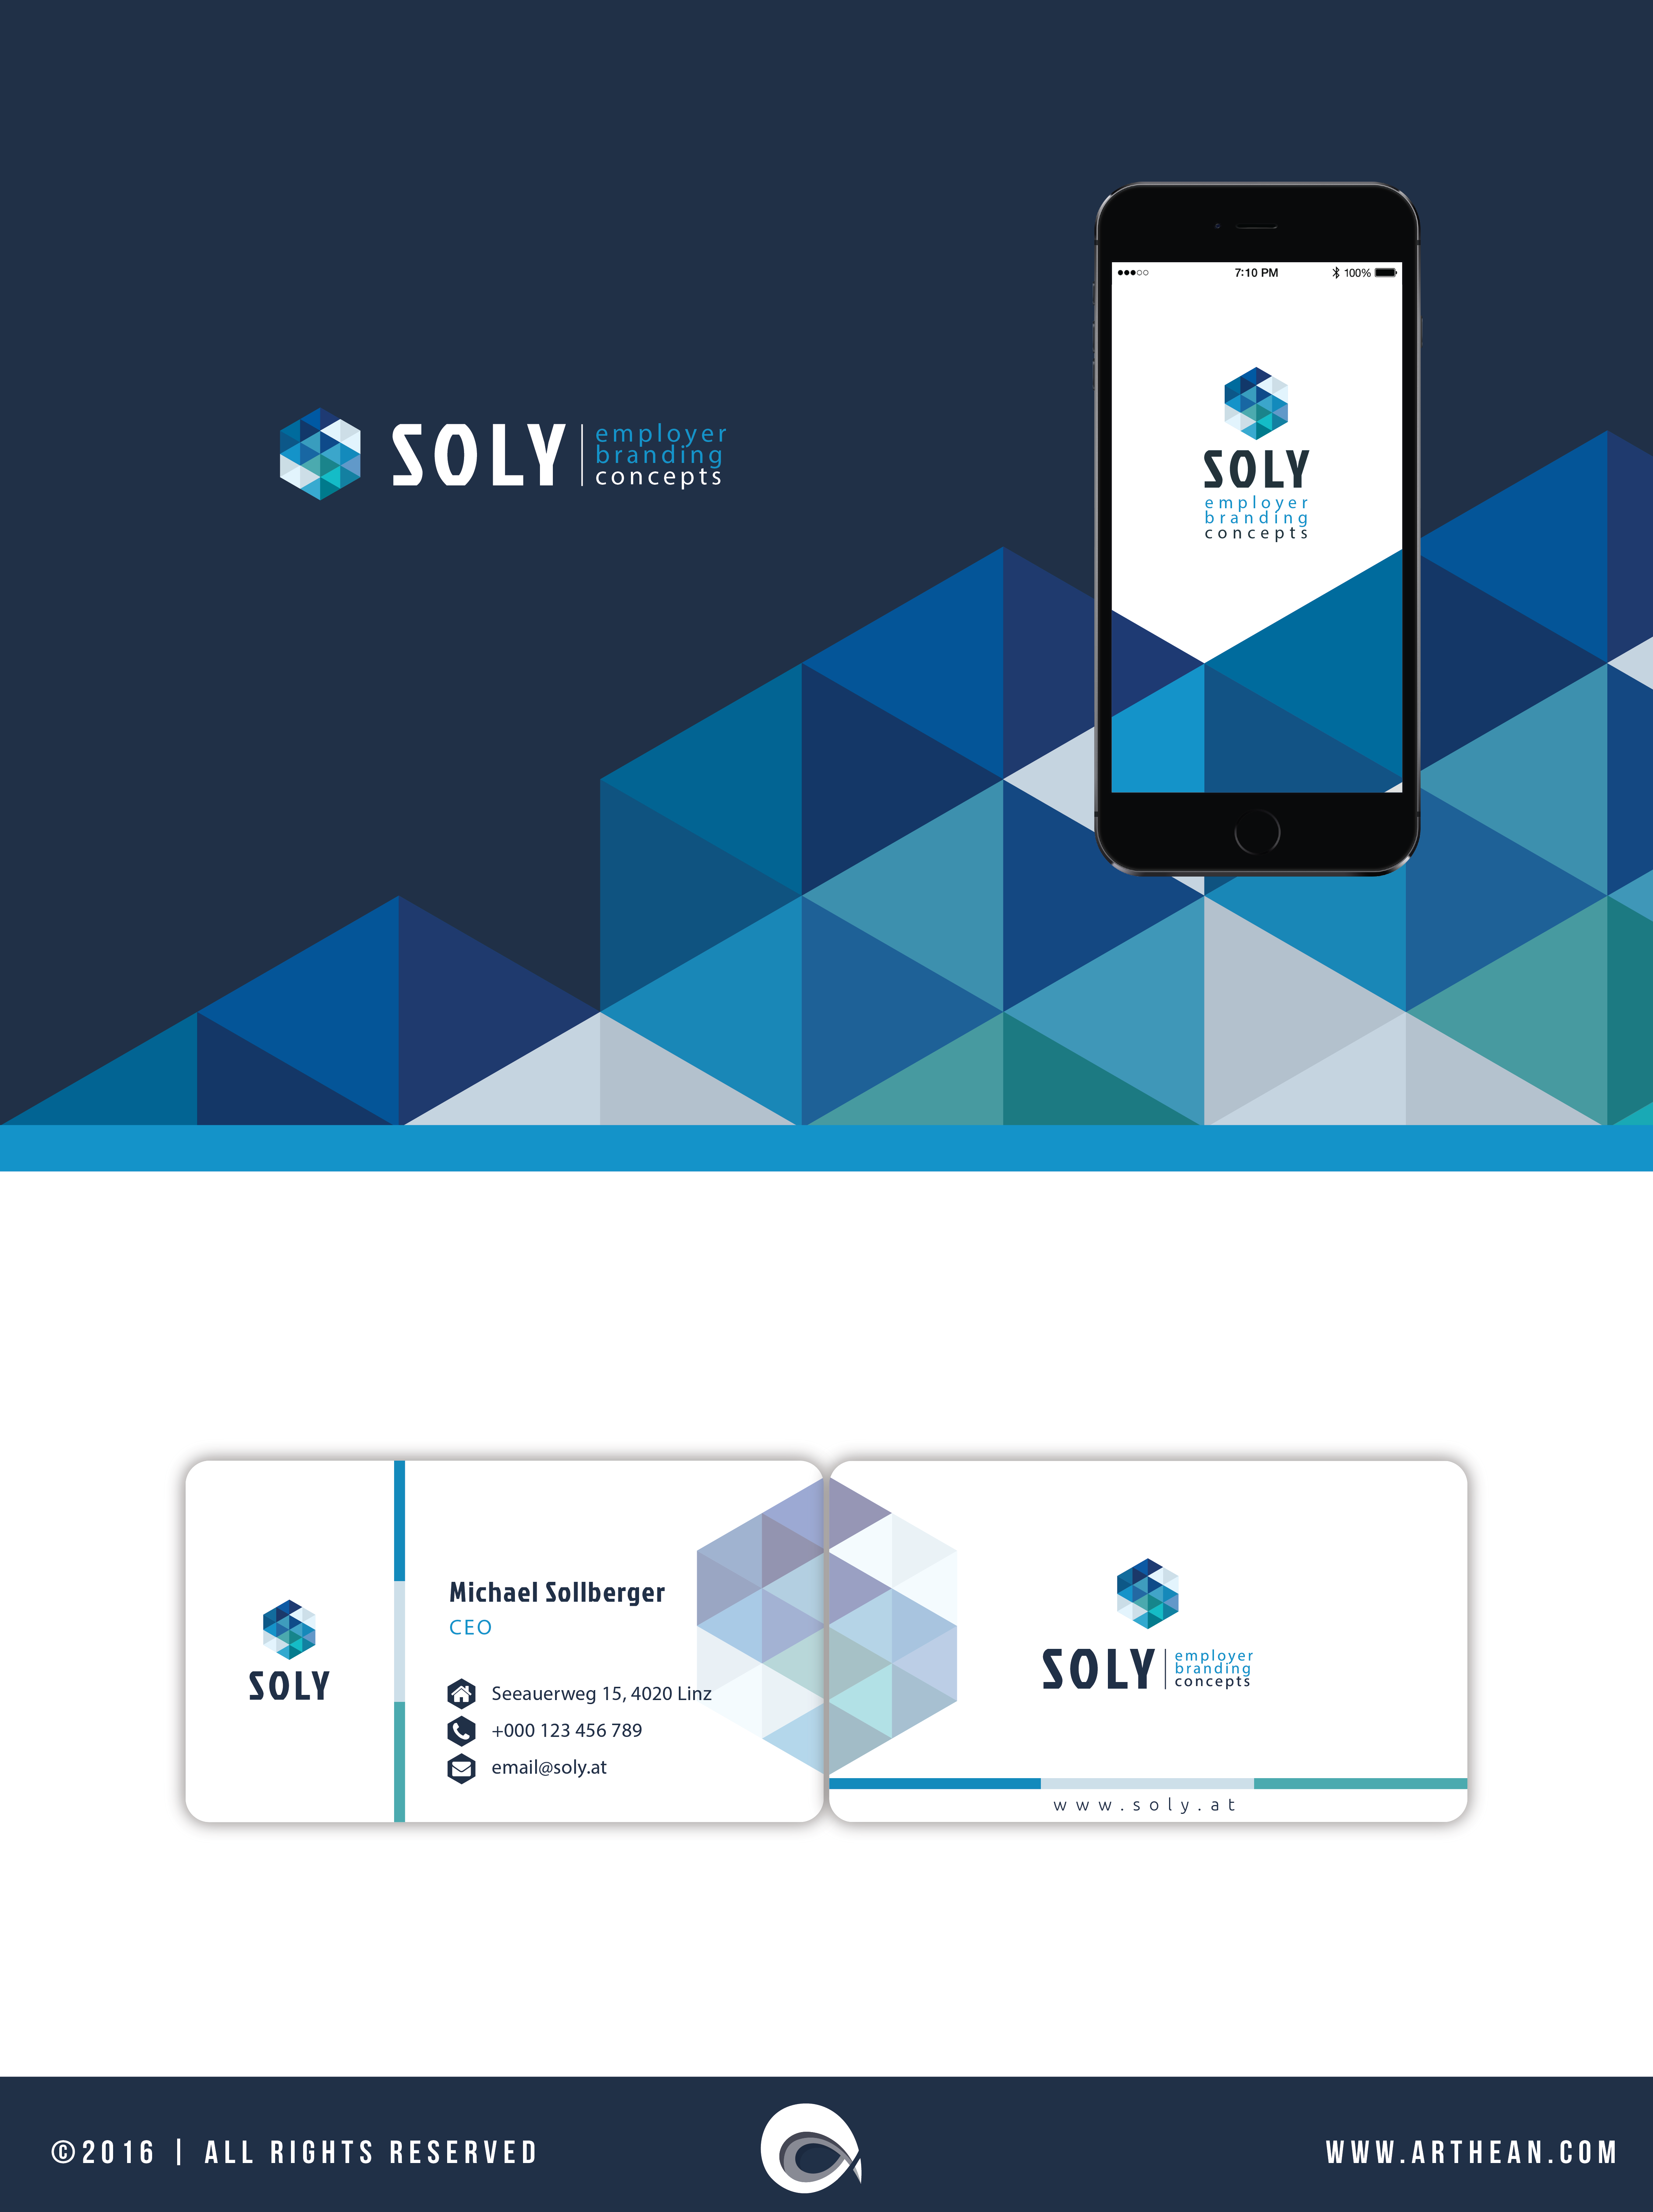 SOLY - employer branding concepts